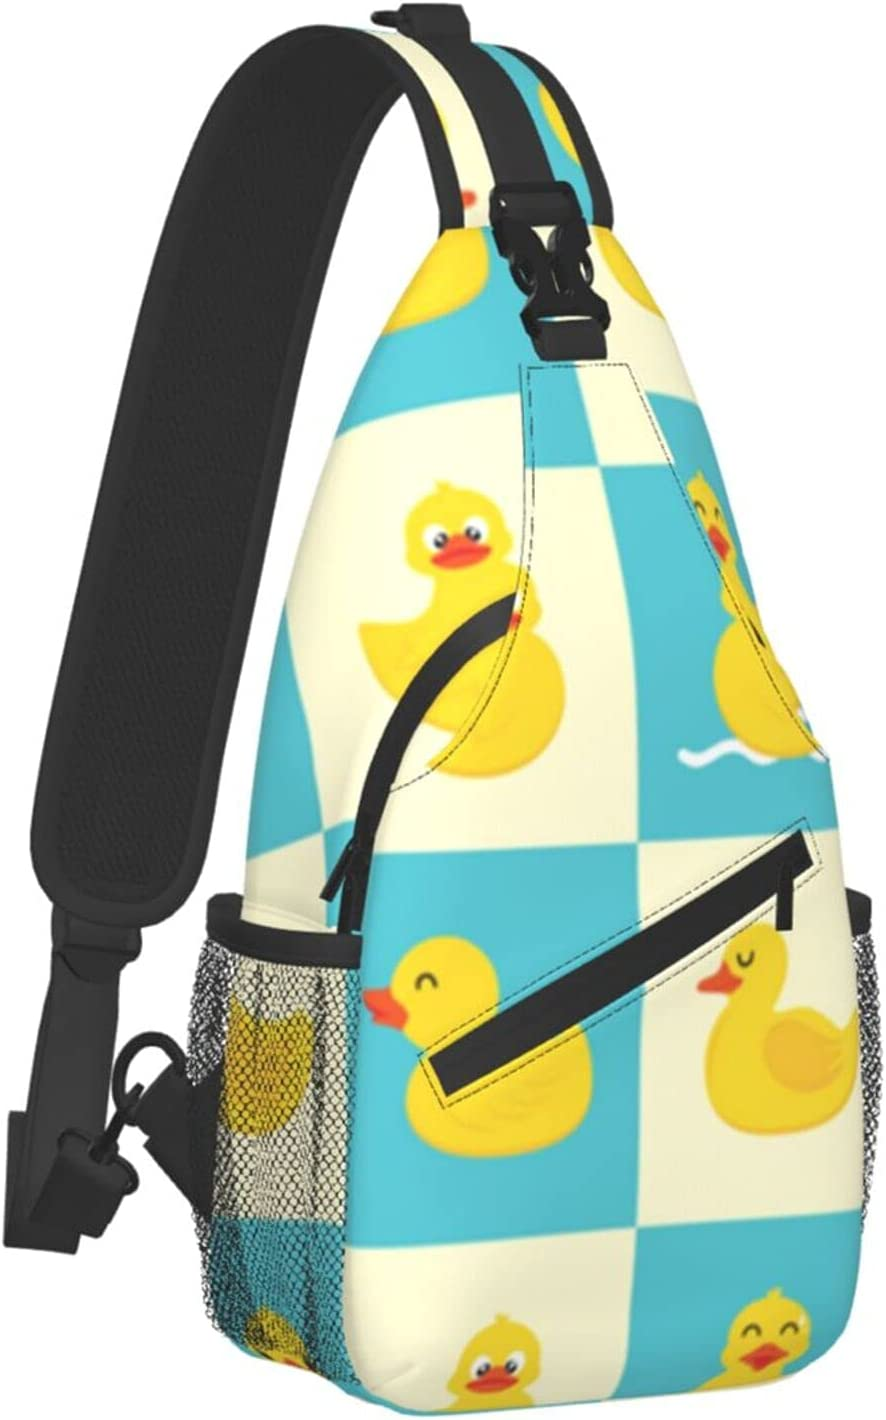 Sling Backpack Travel Hiking Daypack Rope Max 86% OFF Cros Funny Duck Award Rubber